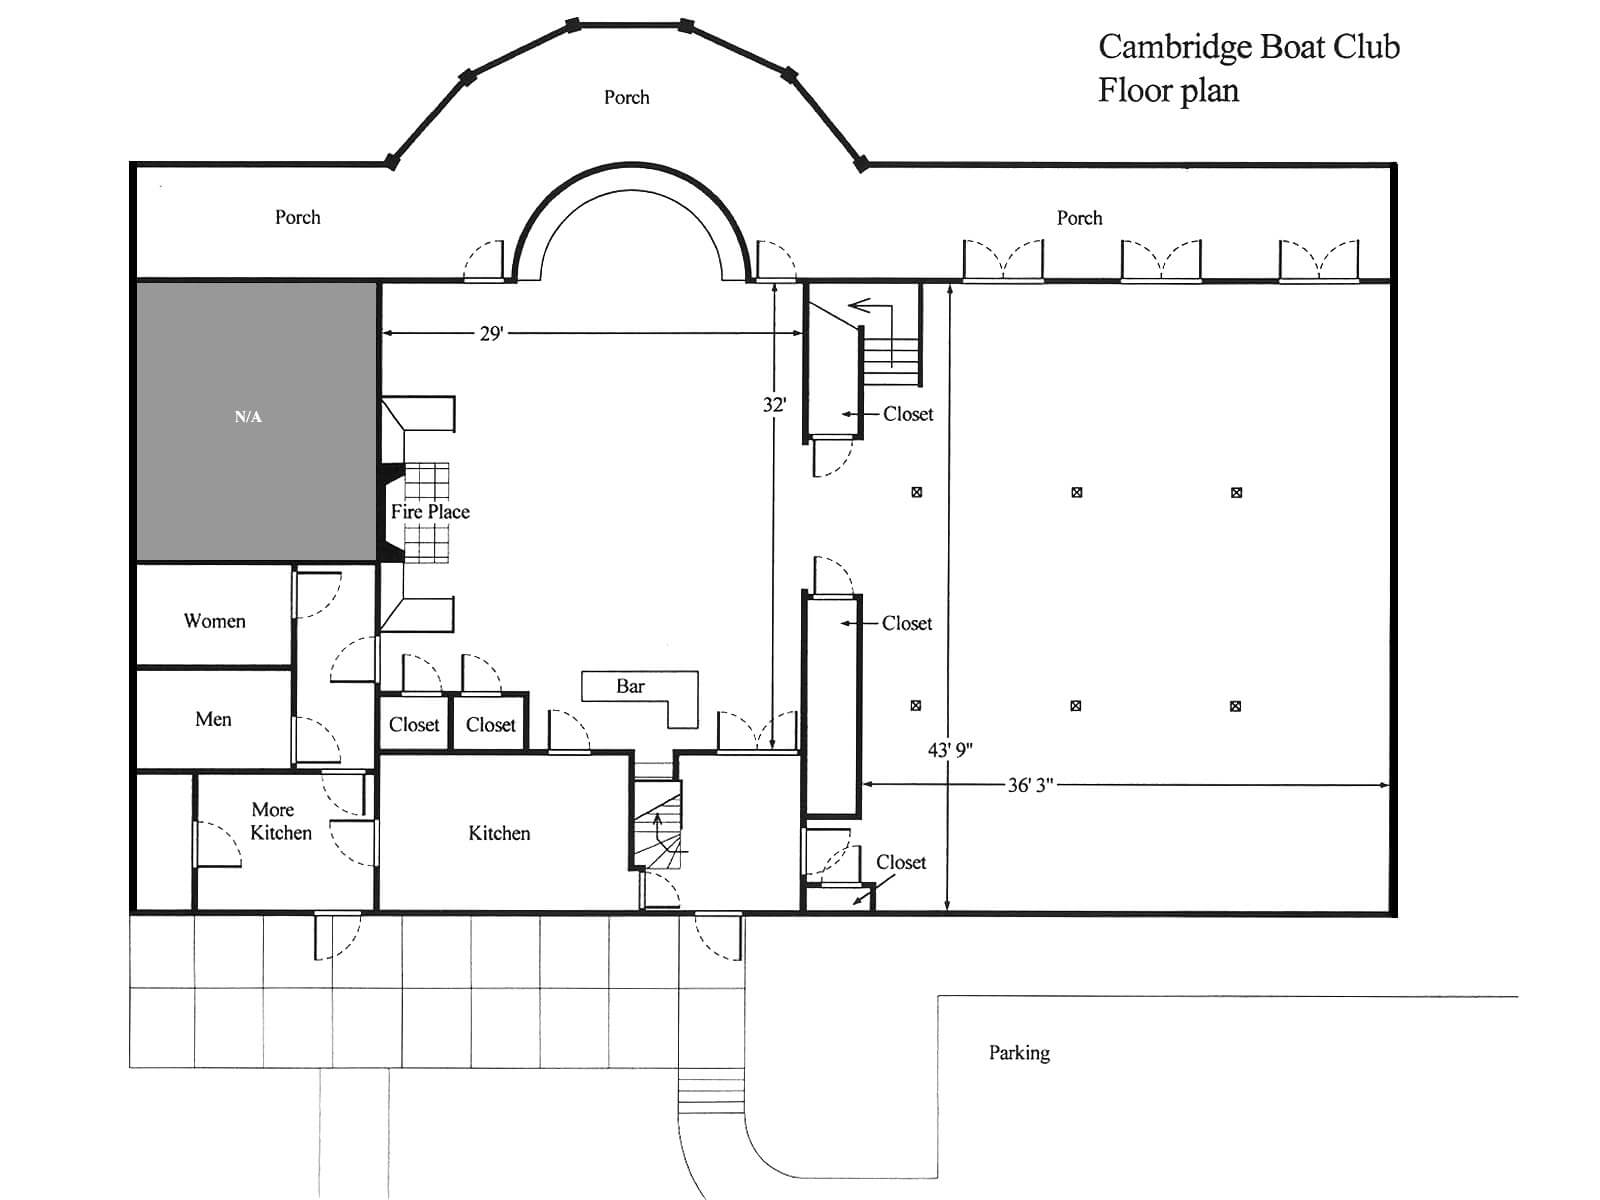 Floor Plan Of The Cambridge Boat Club Cambridge Boat Club